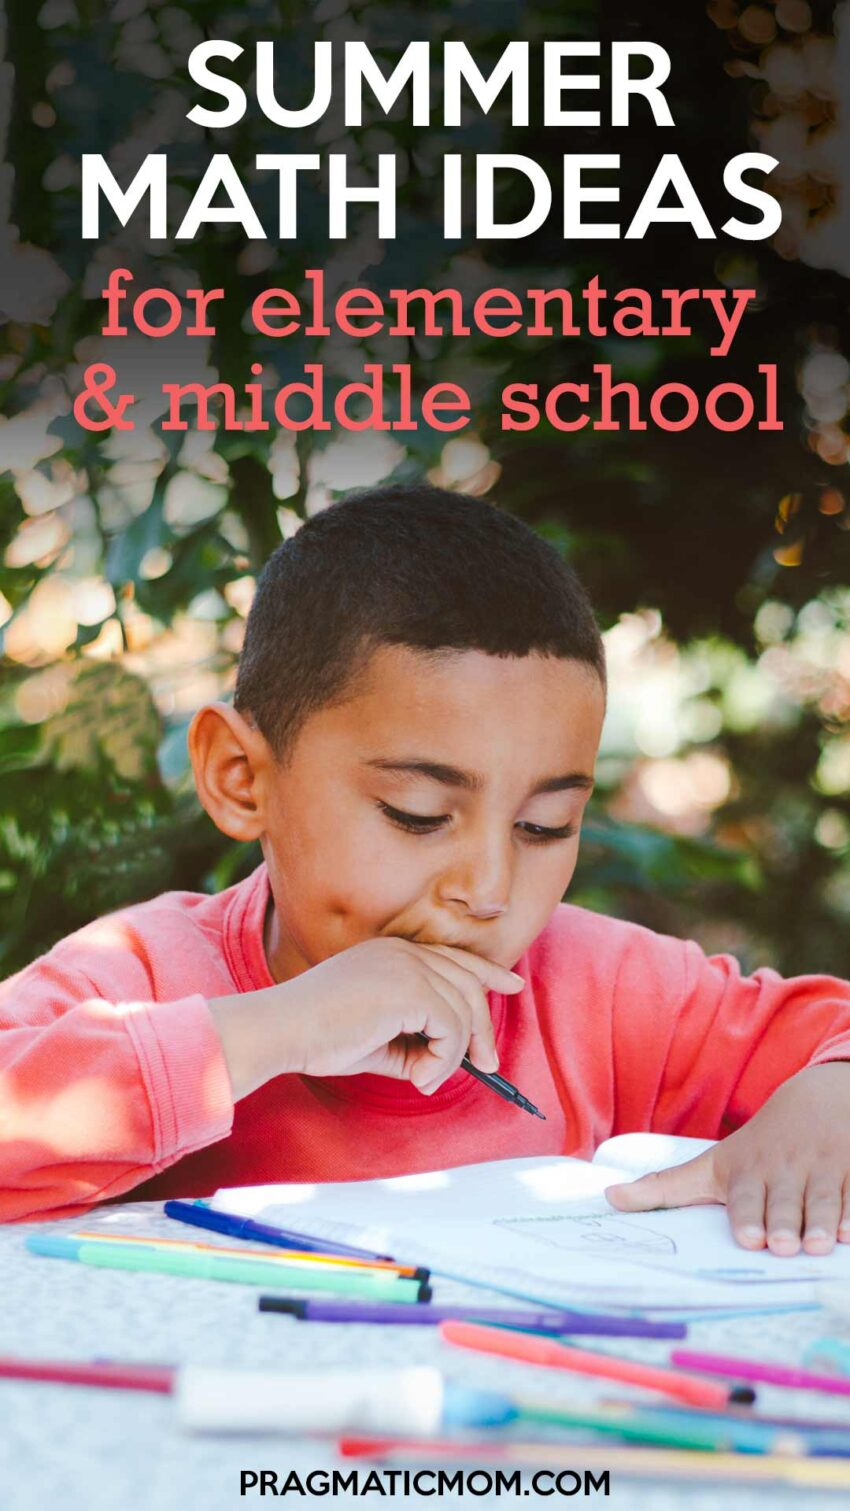 Summer Math Ideas for Elementary and Middle School